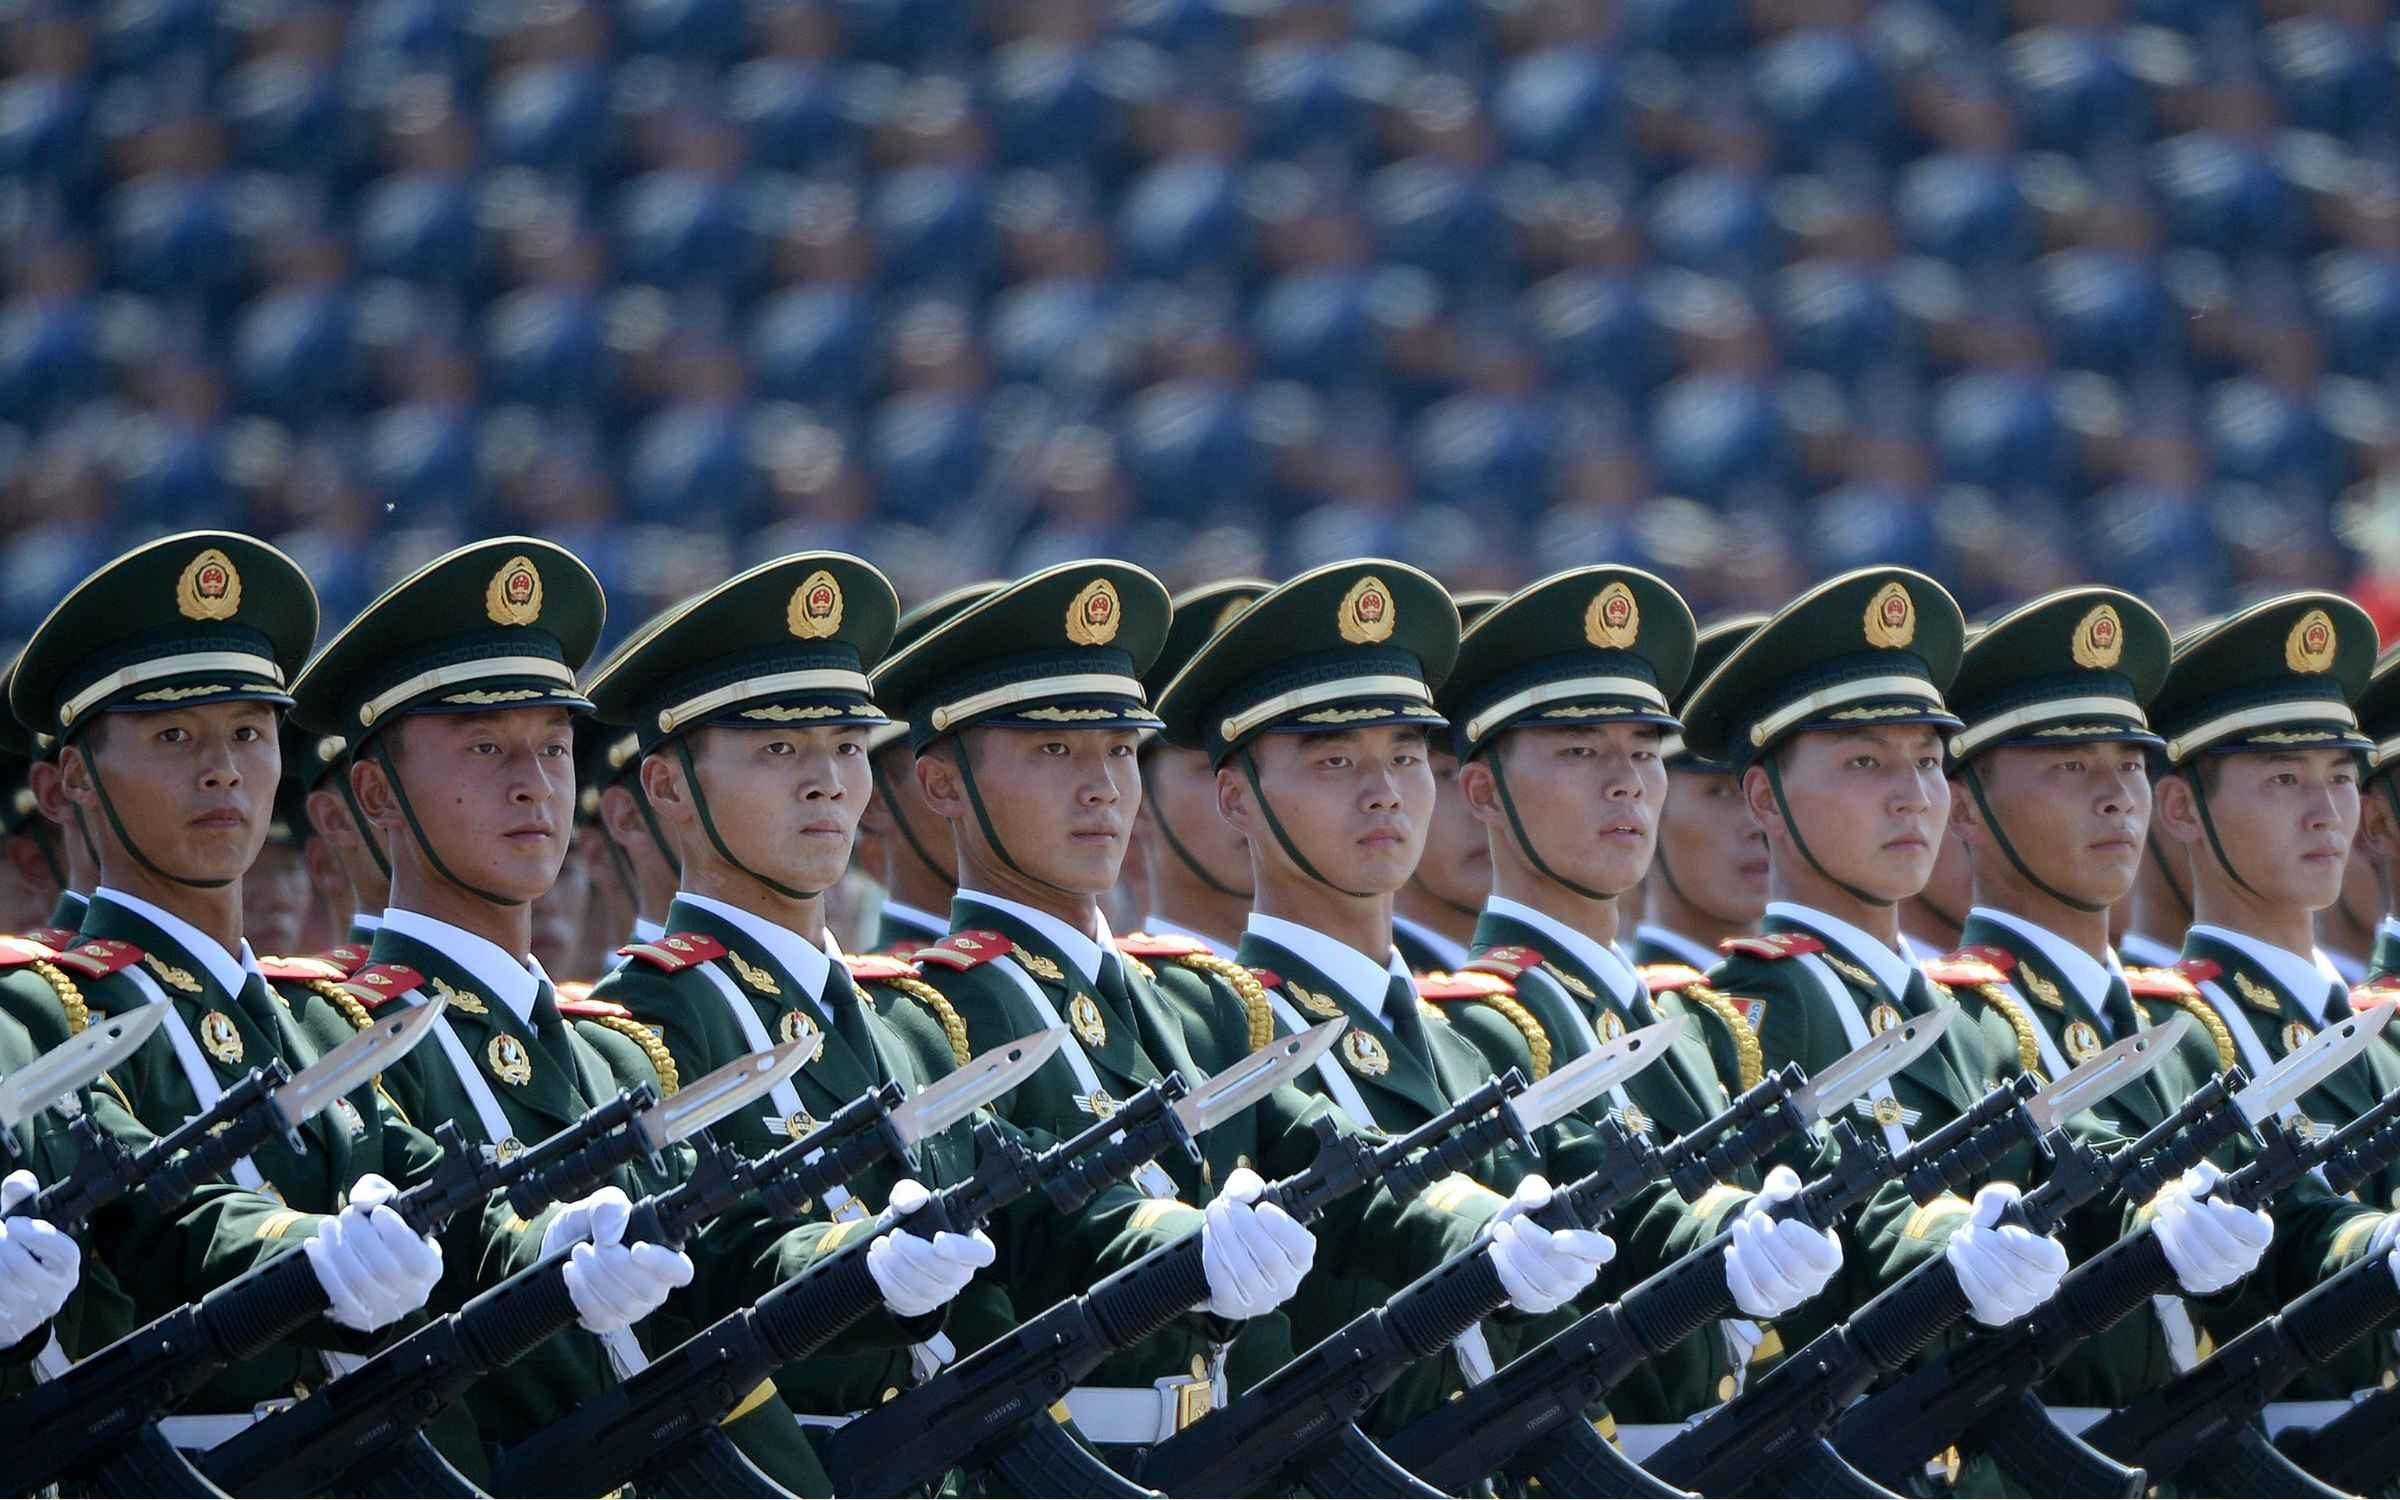 Chinese soldiers march for the 70th anniversary of victory in World War Two. Credit: Wang Zhao/AFP via Getty Images.